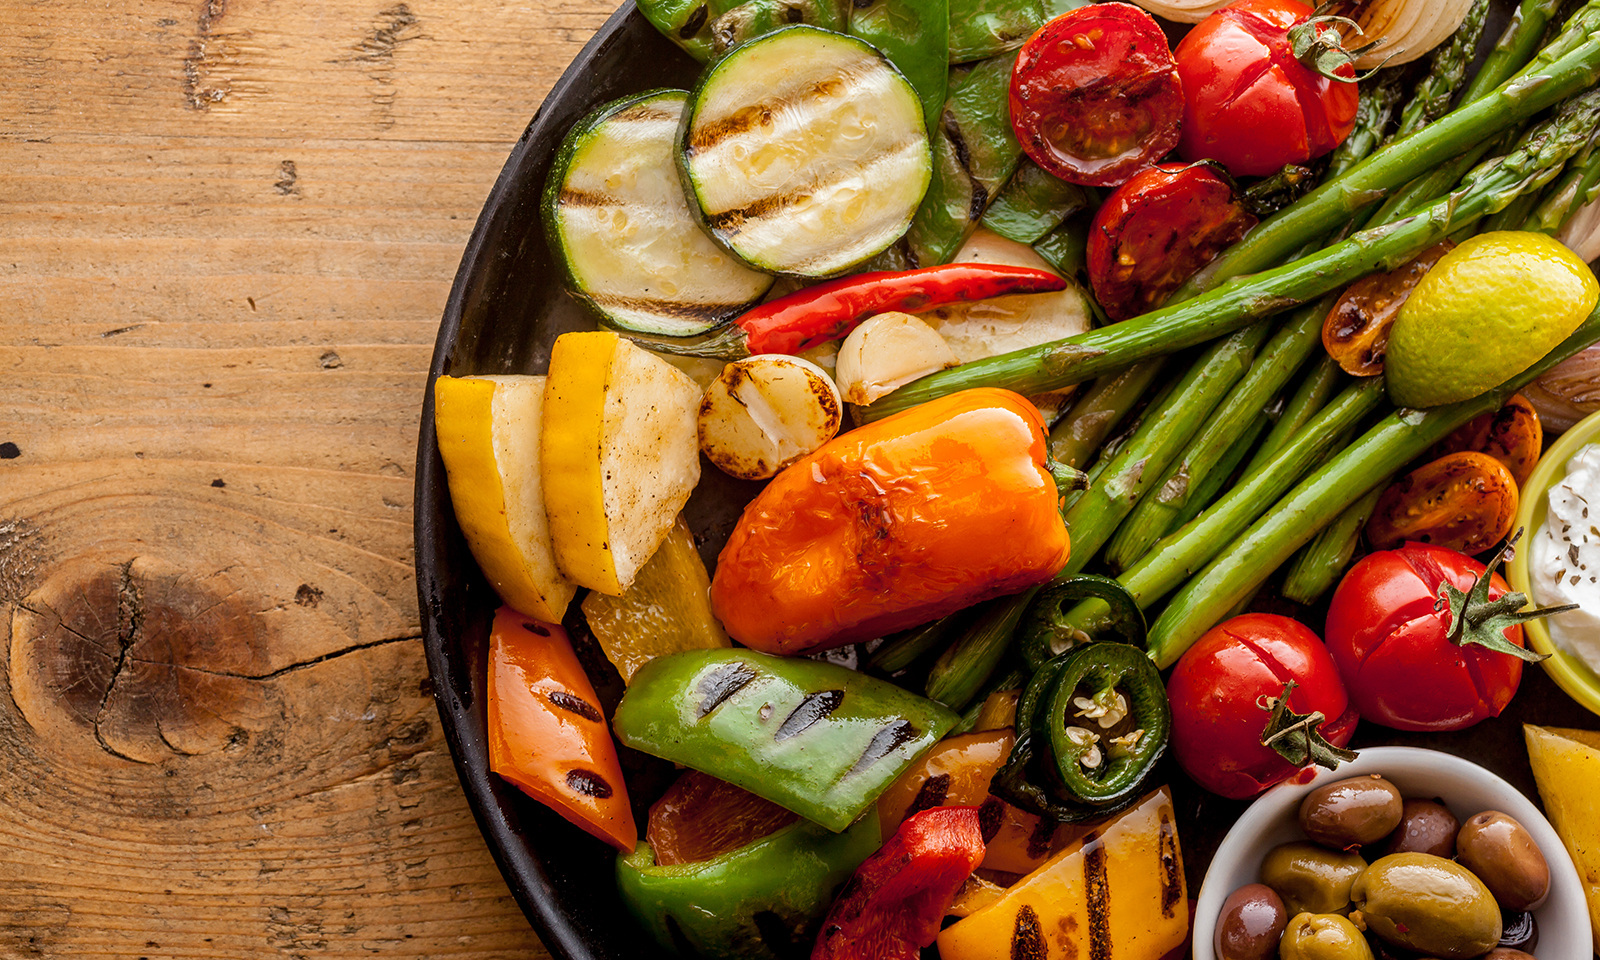 veggies-that-contain-protein-veggies-cooked-in-skillet-main-image